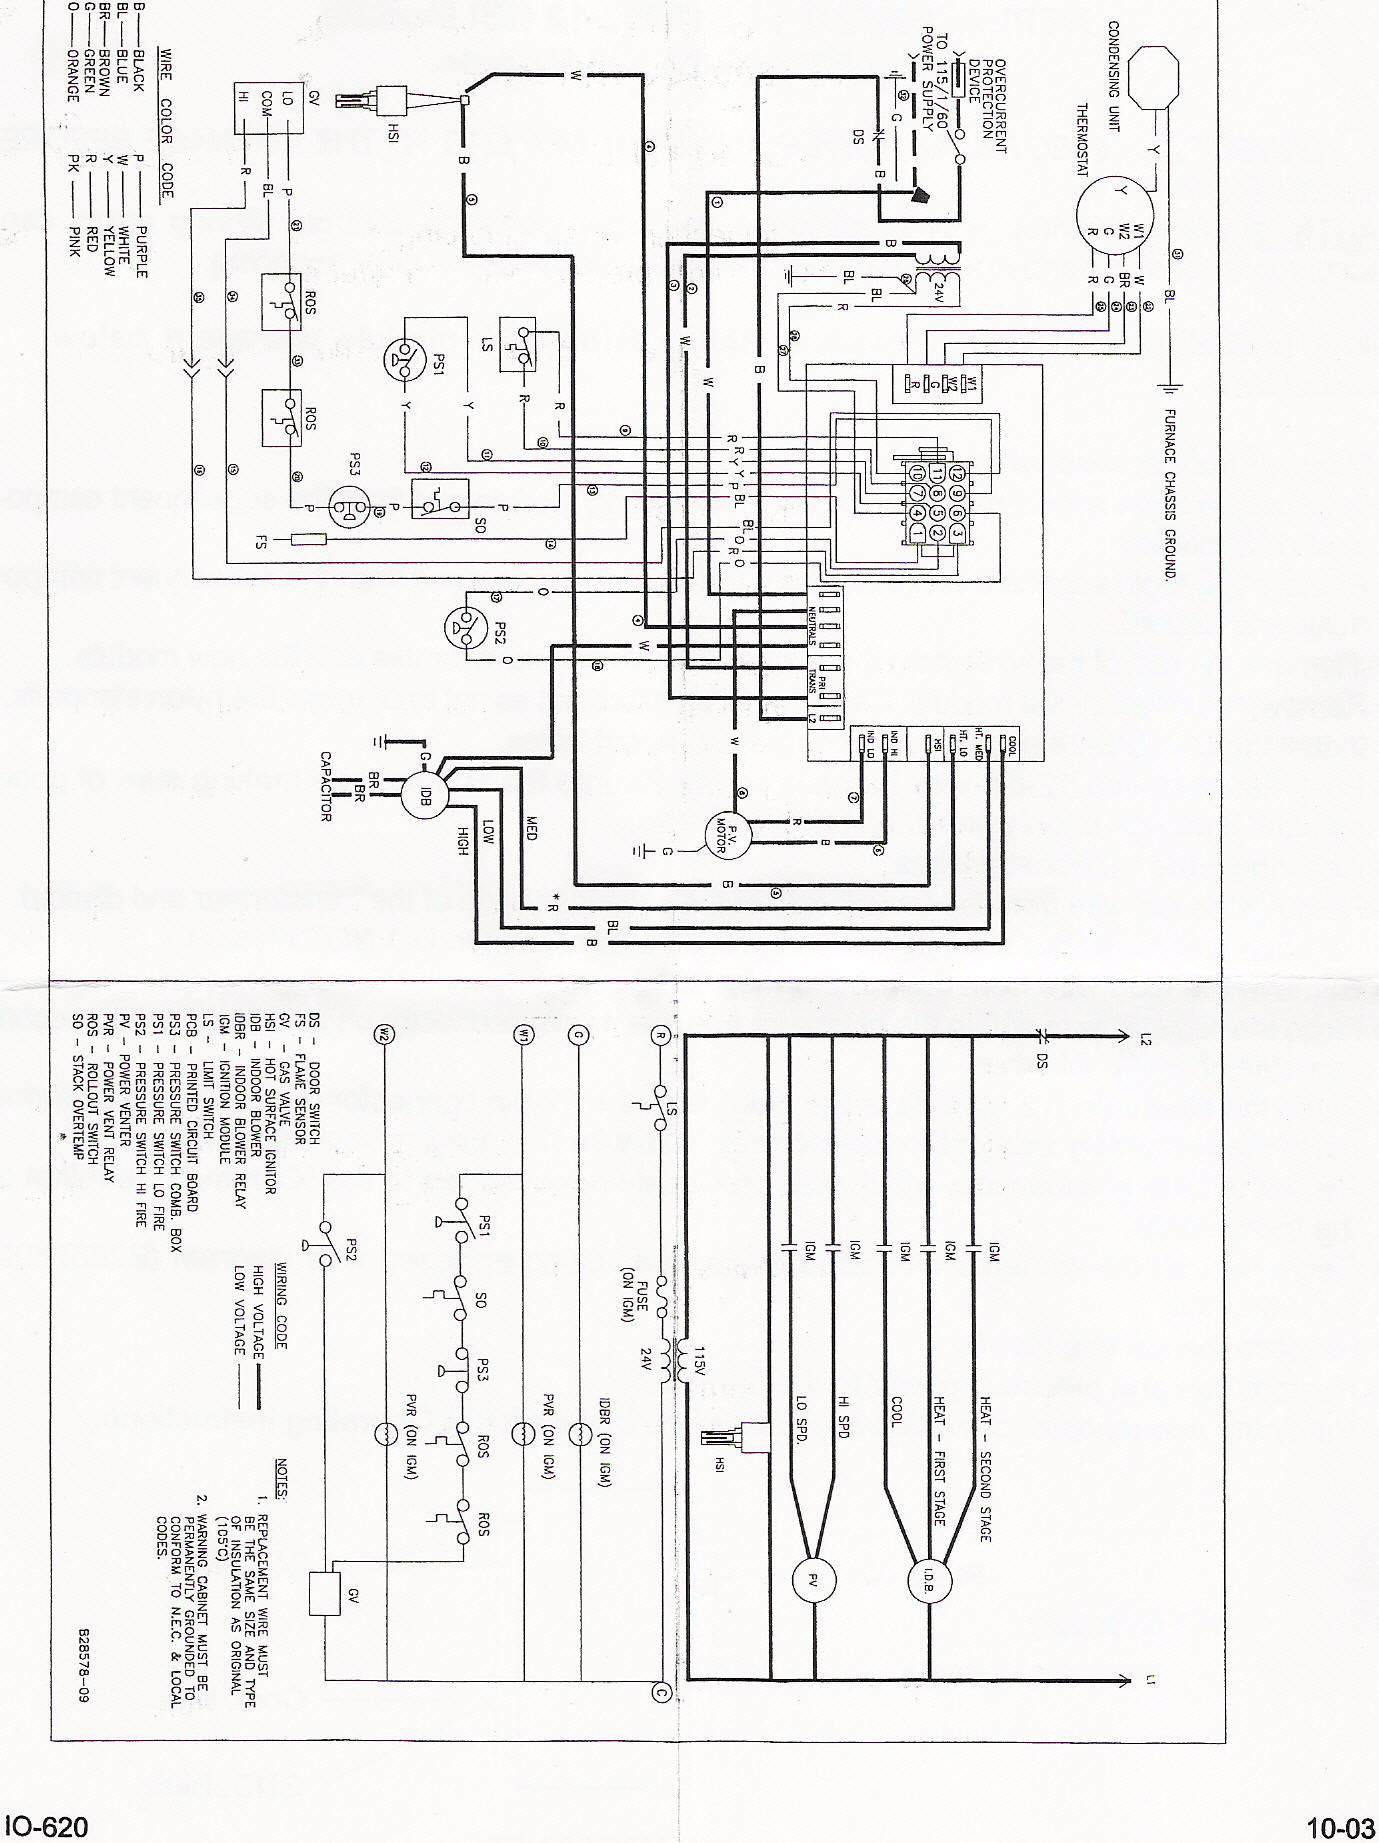 janitrol furnace thermostat wiring diagram wiring lennox thermostat wiring diagram lennox thermostat wiring diagram lennox thermostat wiring diagram lennox thermostat wiring diagram